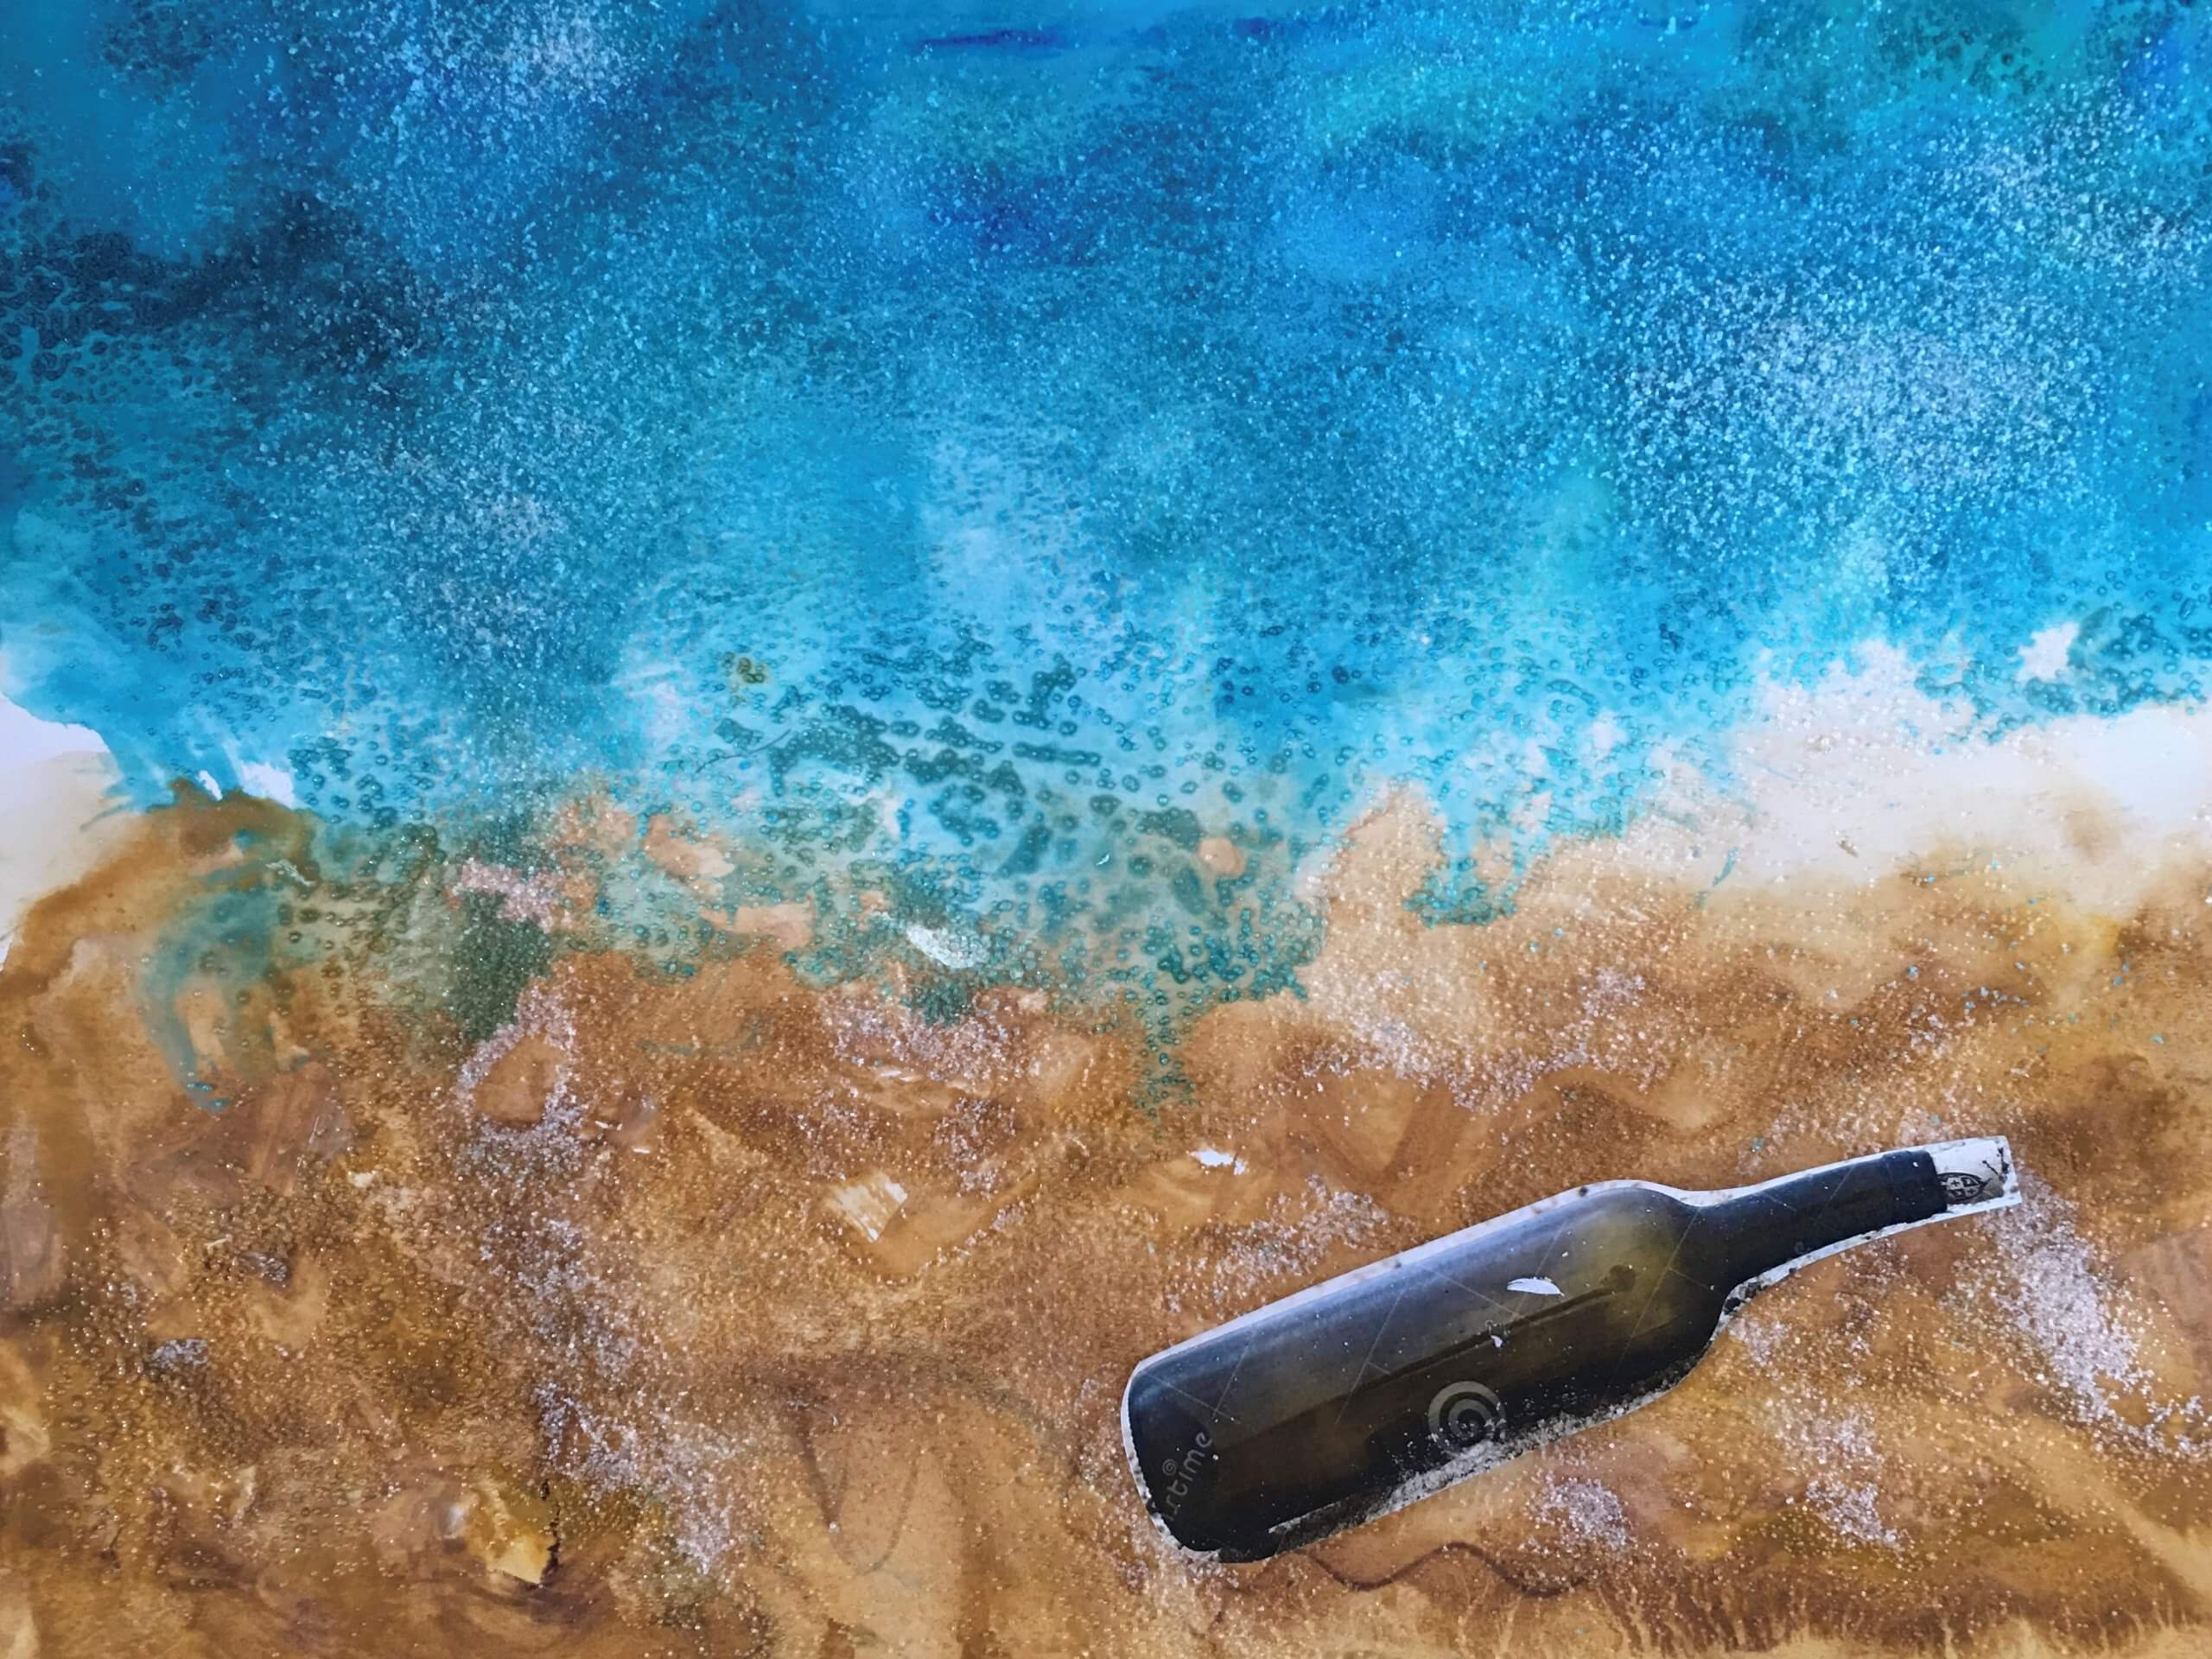 A mixed media artwork that has a textured background that resembles water meeting a shore. A long bottle is cutout and collaged in the lower right as if it has washed to shore.